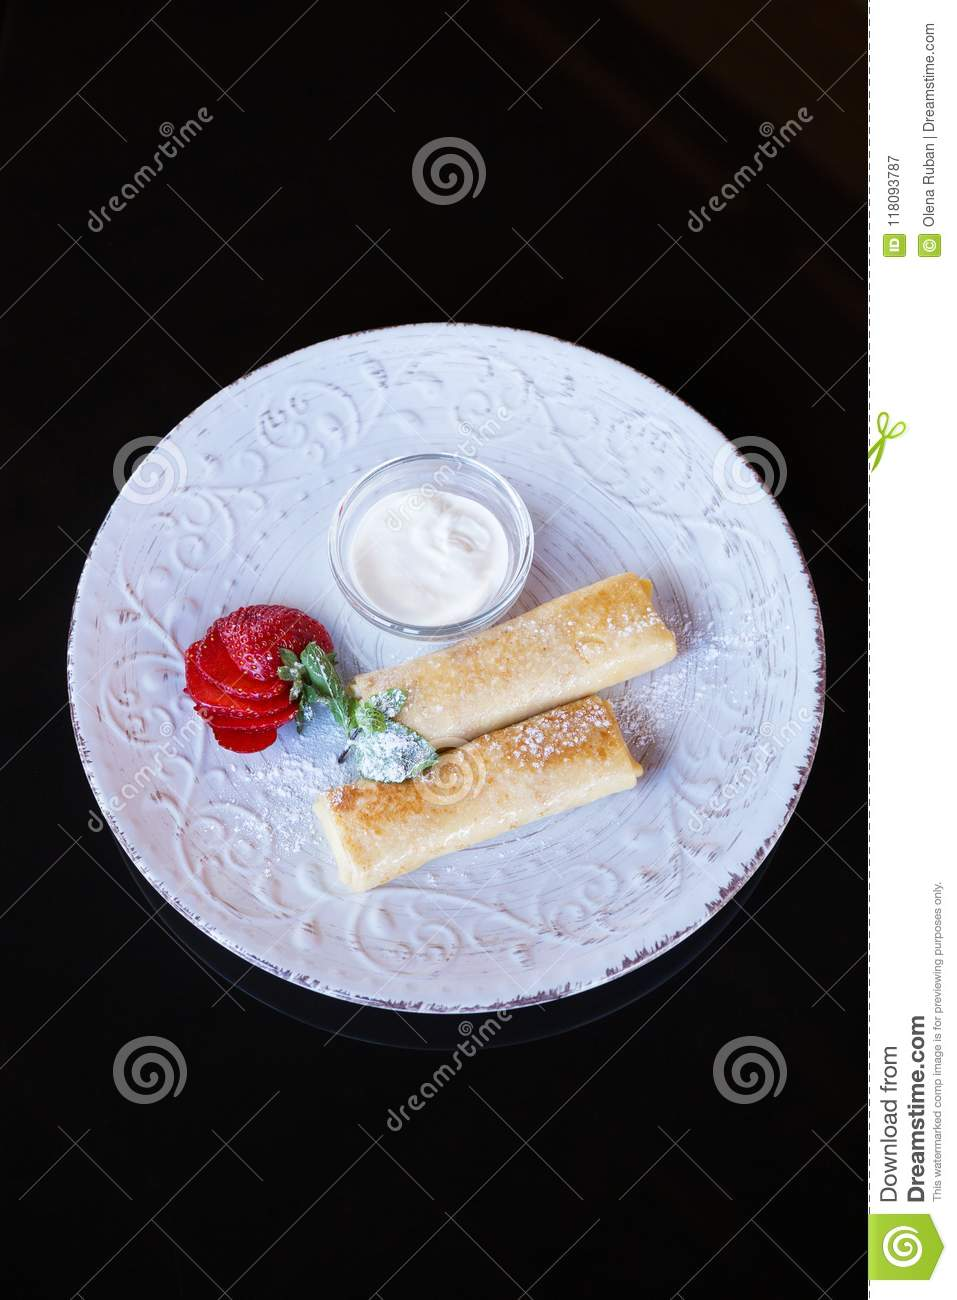 Pancakes on beautiful plate, space for text